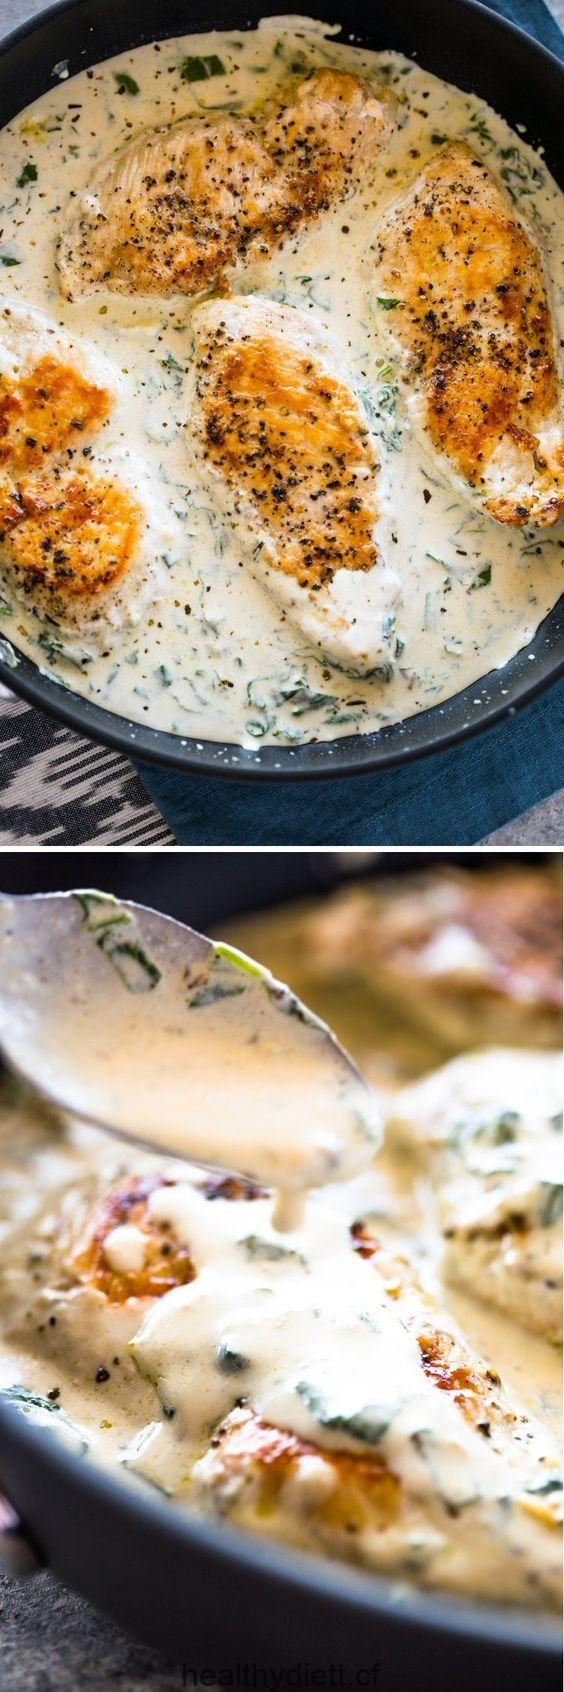 Creamy Parmesan Garlic Chicken – This was a really phenomenal dish. I served it … – Michelle Cara